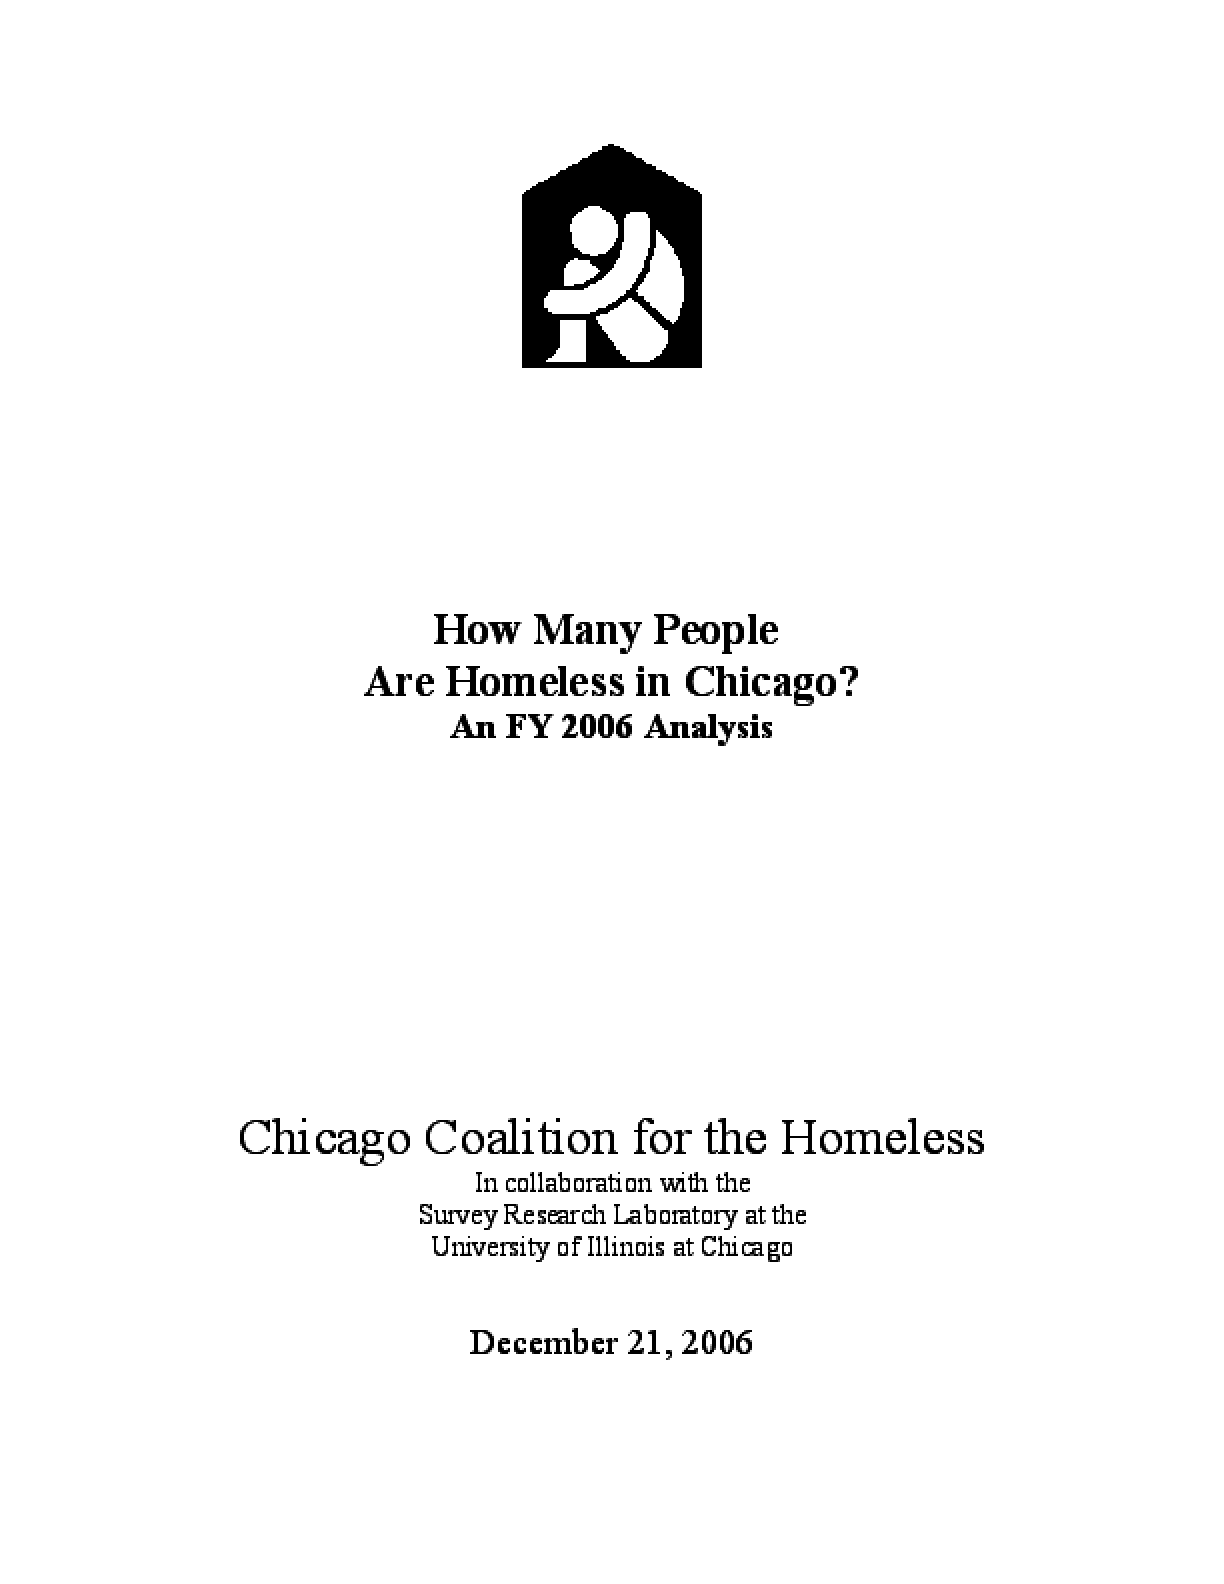 How Many People Are Homeless in Chicago? An FY 2006 Analysis